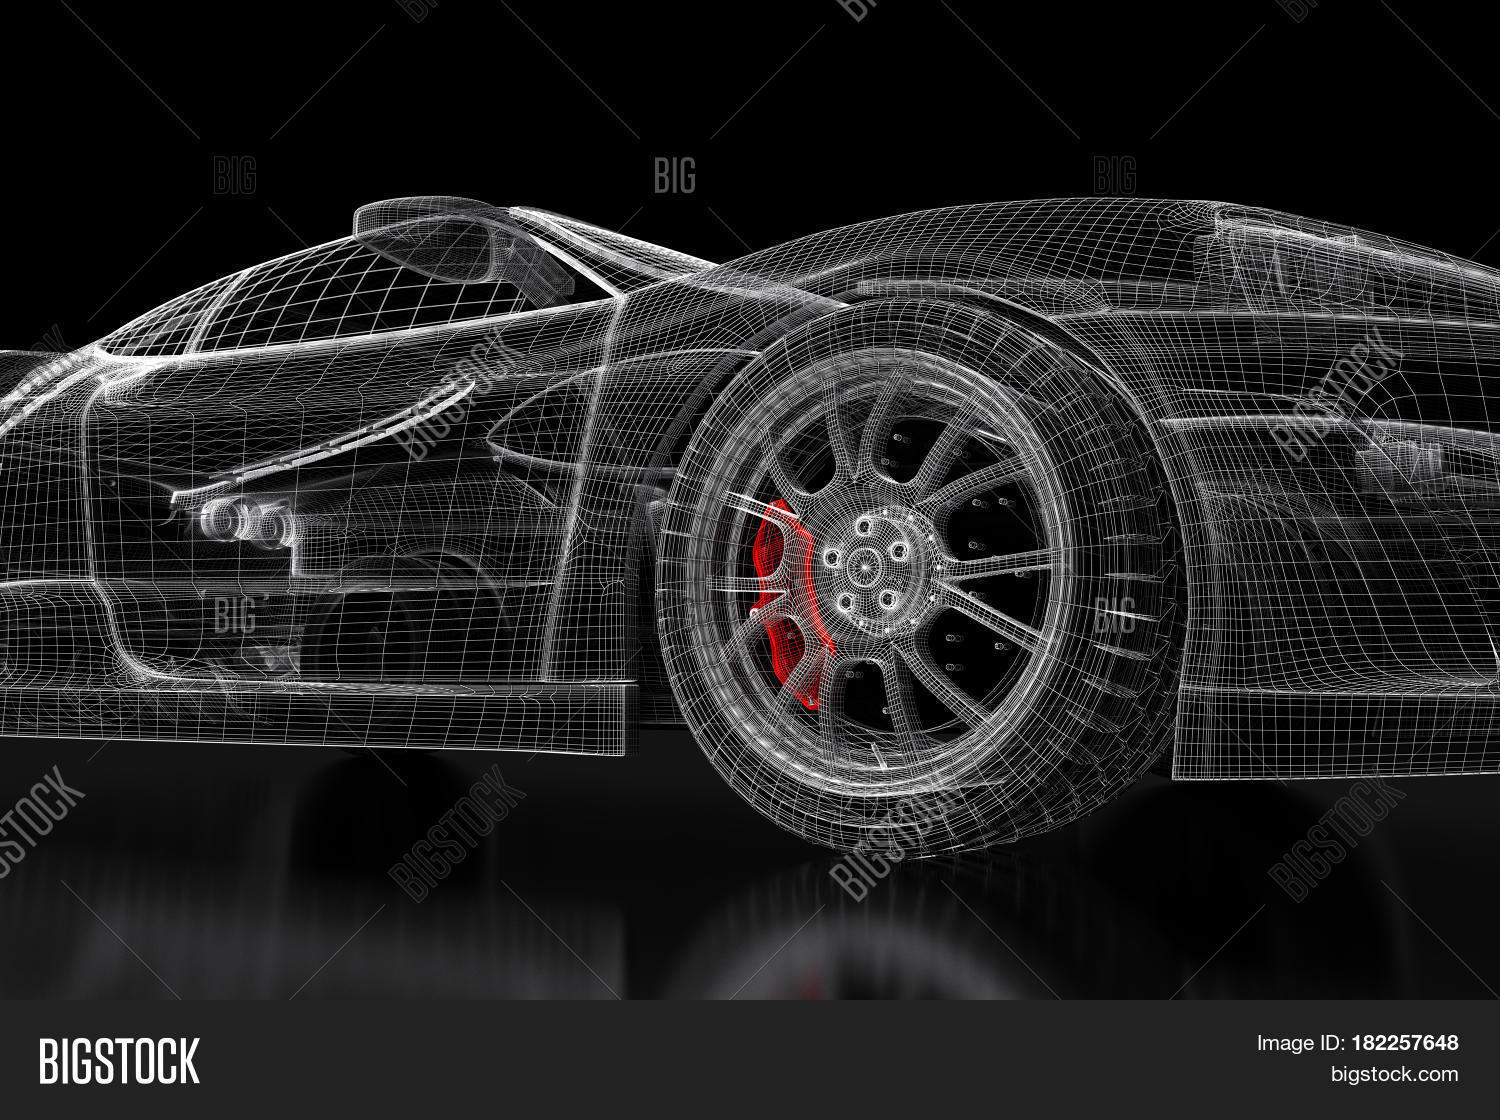 Car vehicle 3d image photo free trial bigstock car vehicle 3d blueprint mesh model with a red brake caliper on a black background malvernweather Gallery